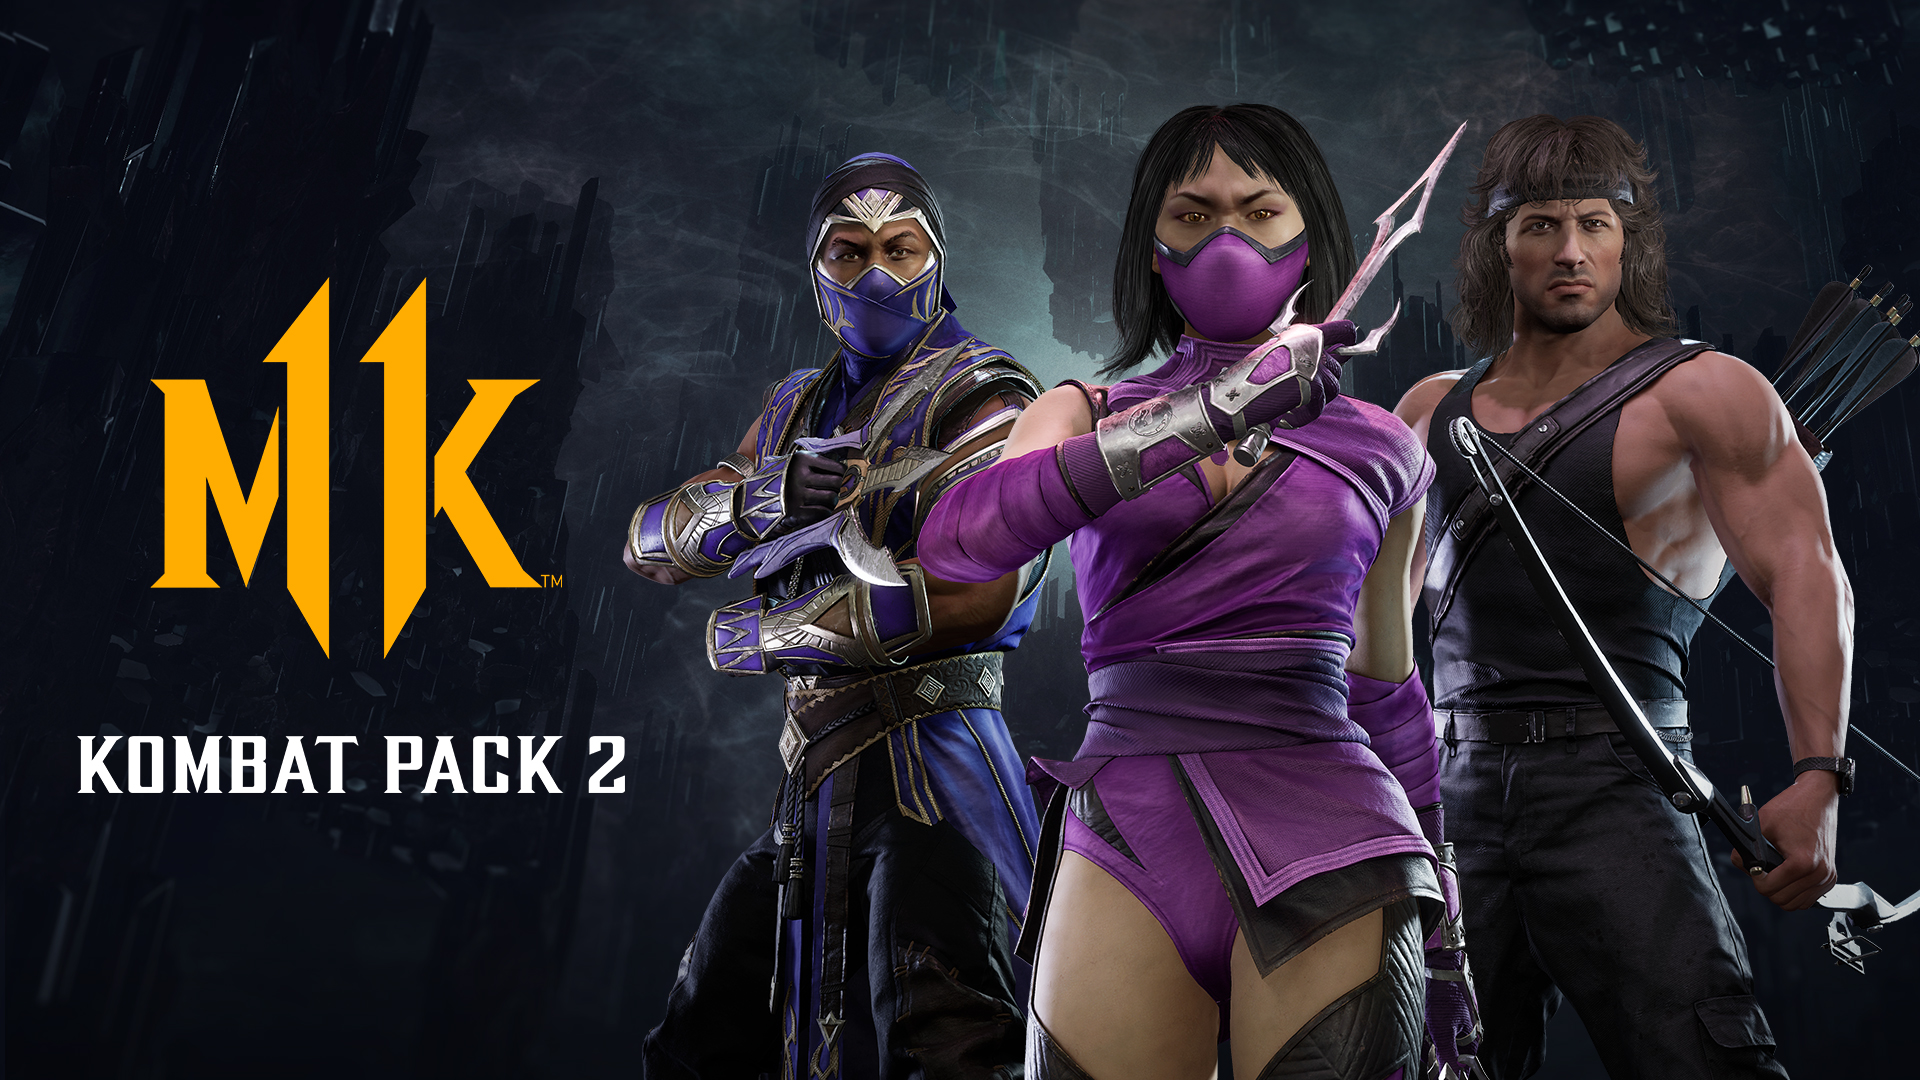 Mortal_Kombat_11_Ultimate_Kombat_Pack_2.jpg